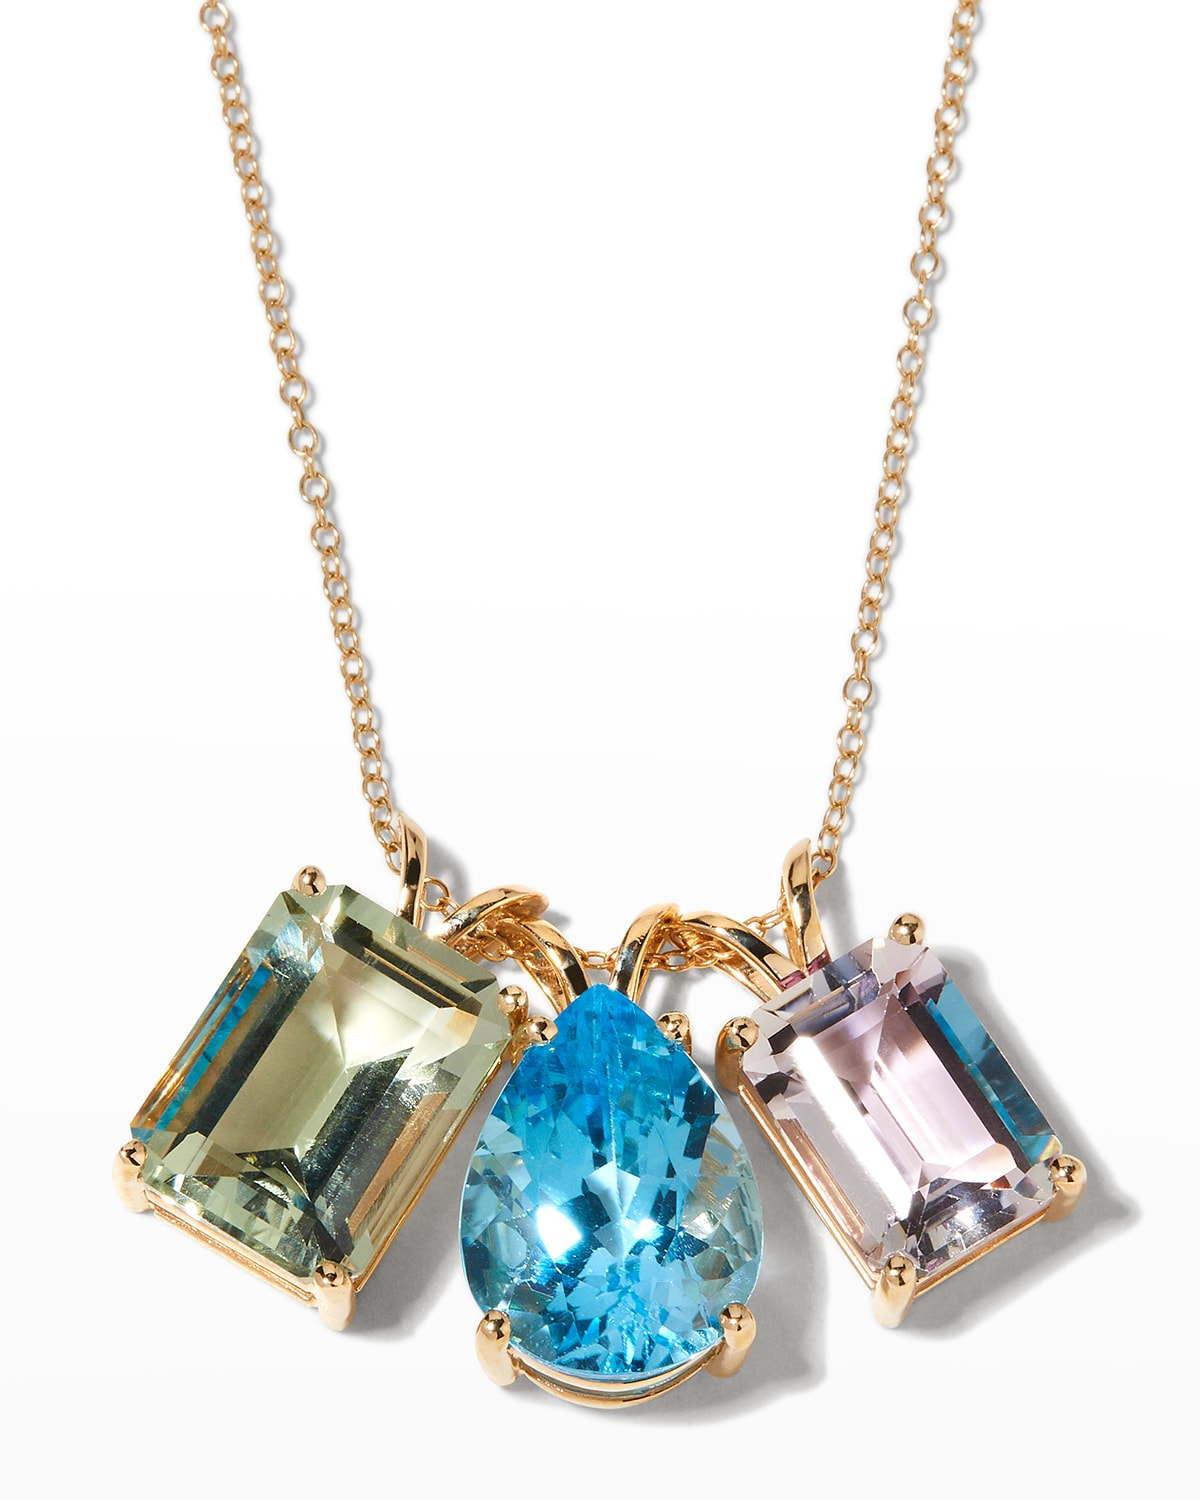 Jollie Necklace and Pendants